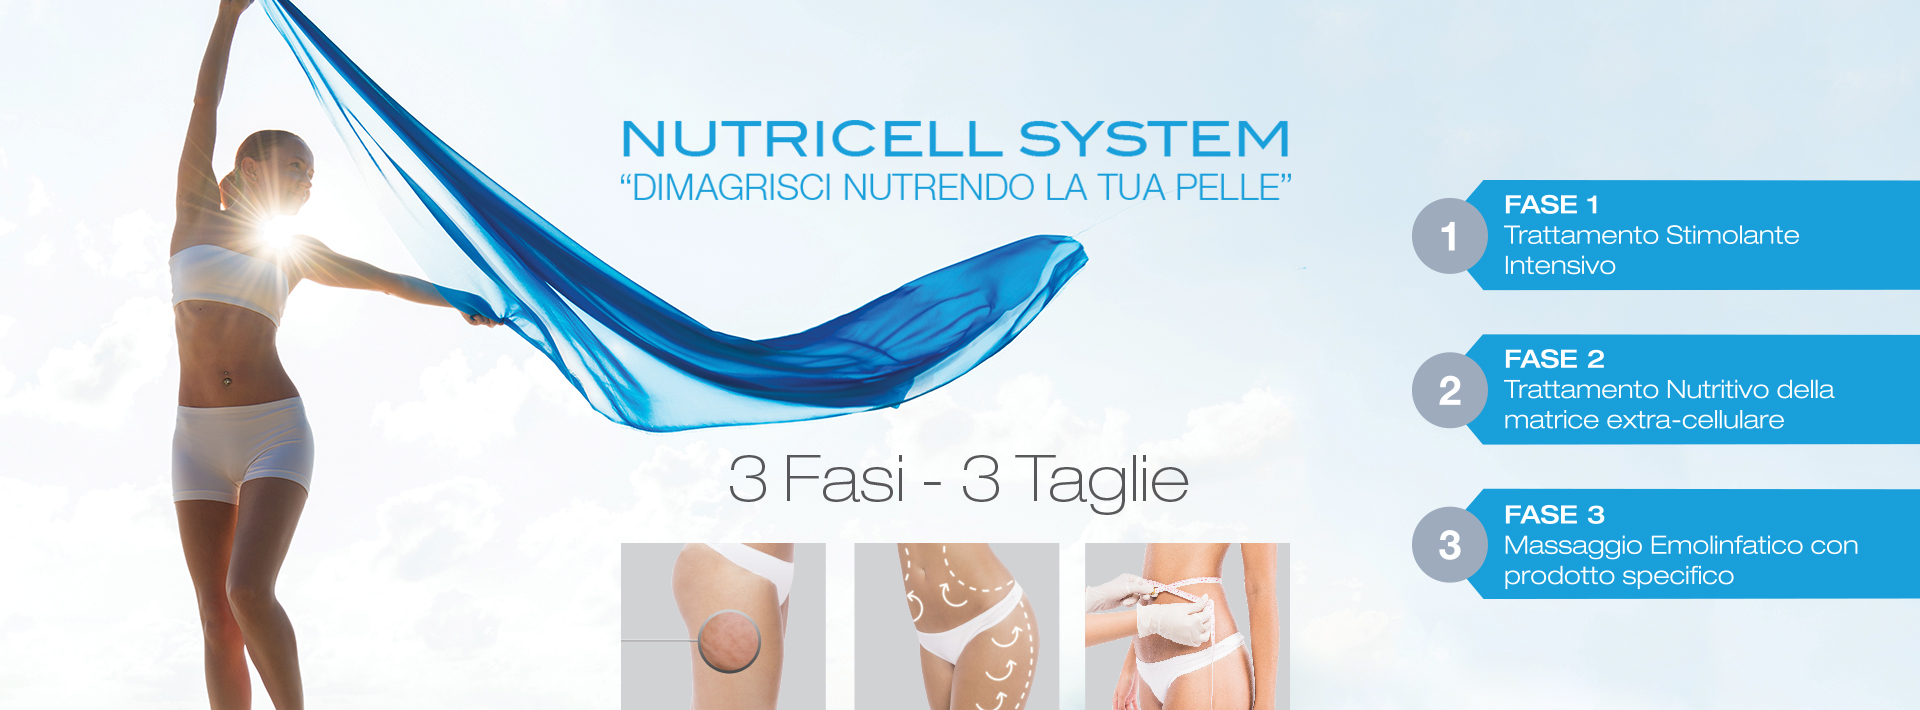 nutricell system